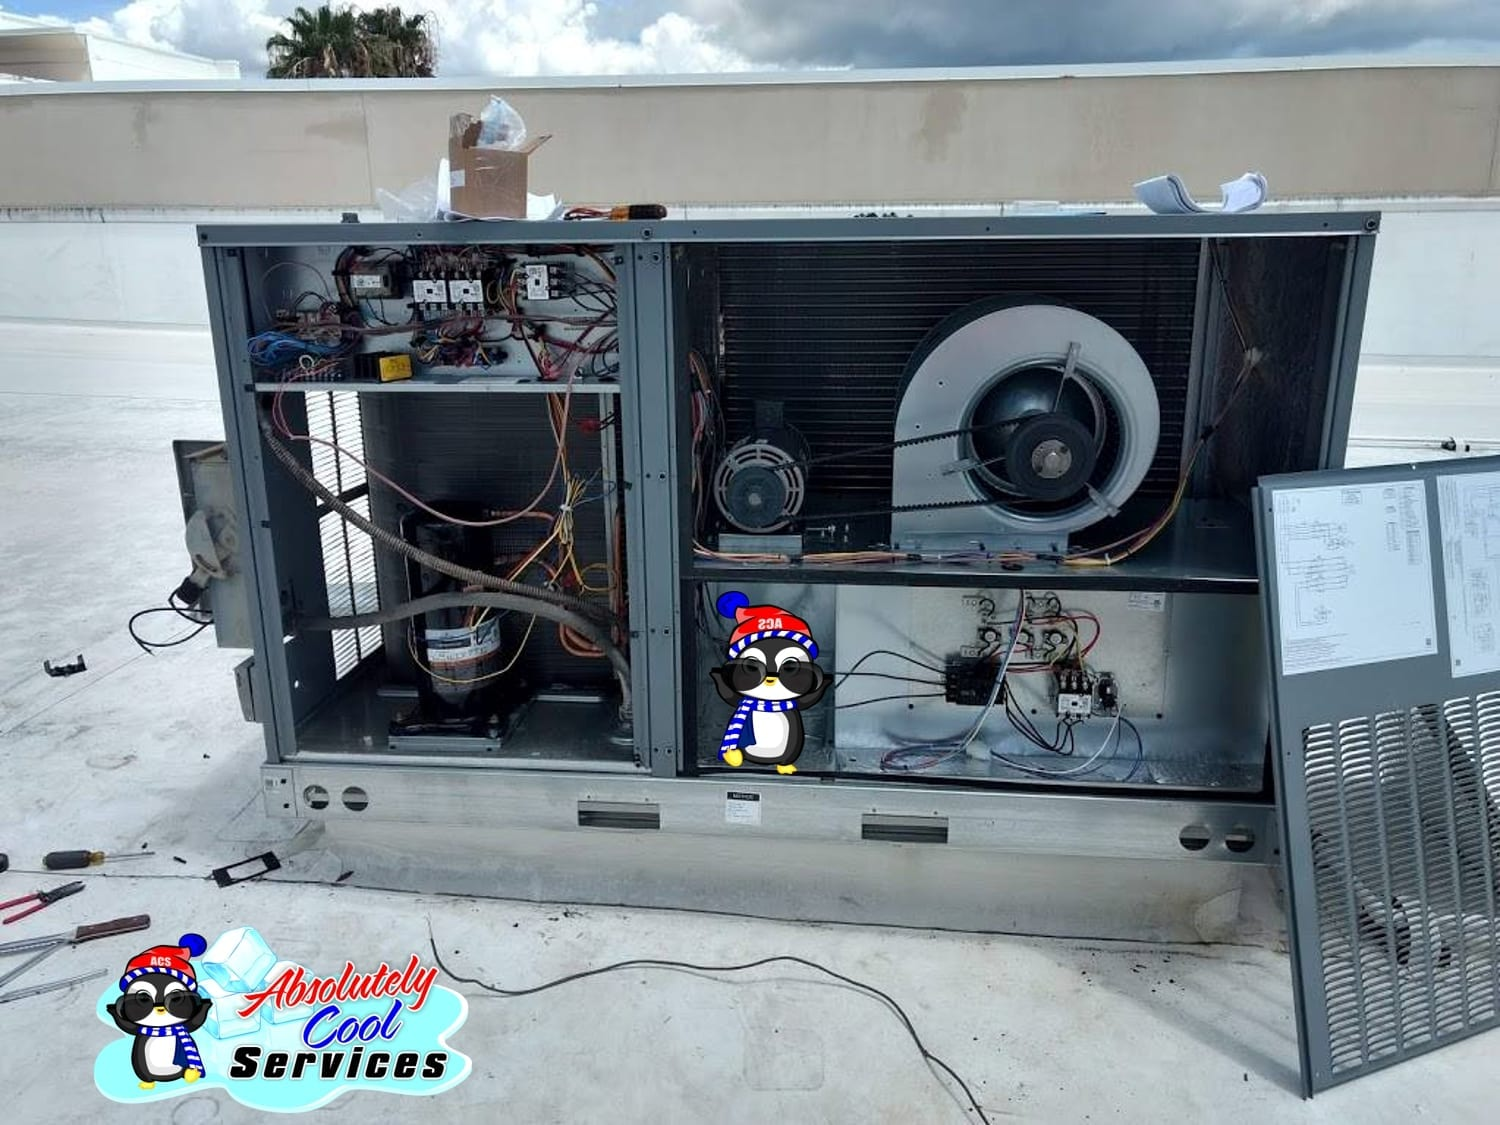 Roof Air Conditioning | HVAC Duct Work Service near Boynton Beach